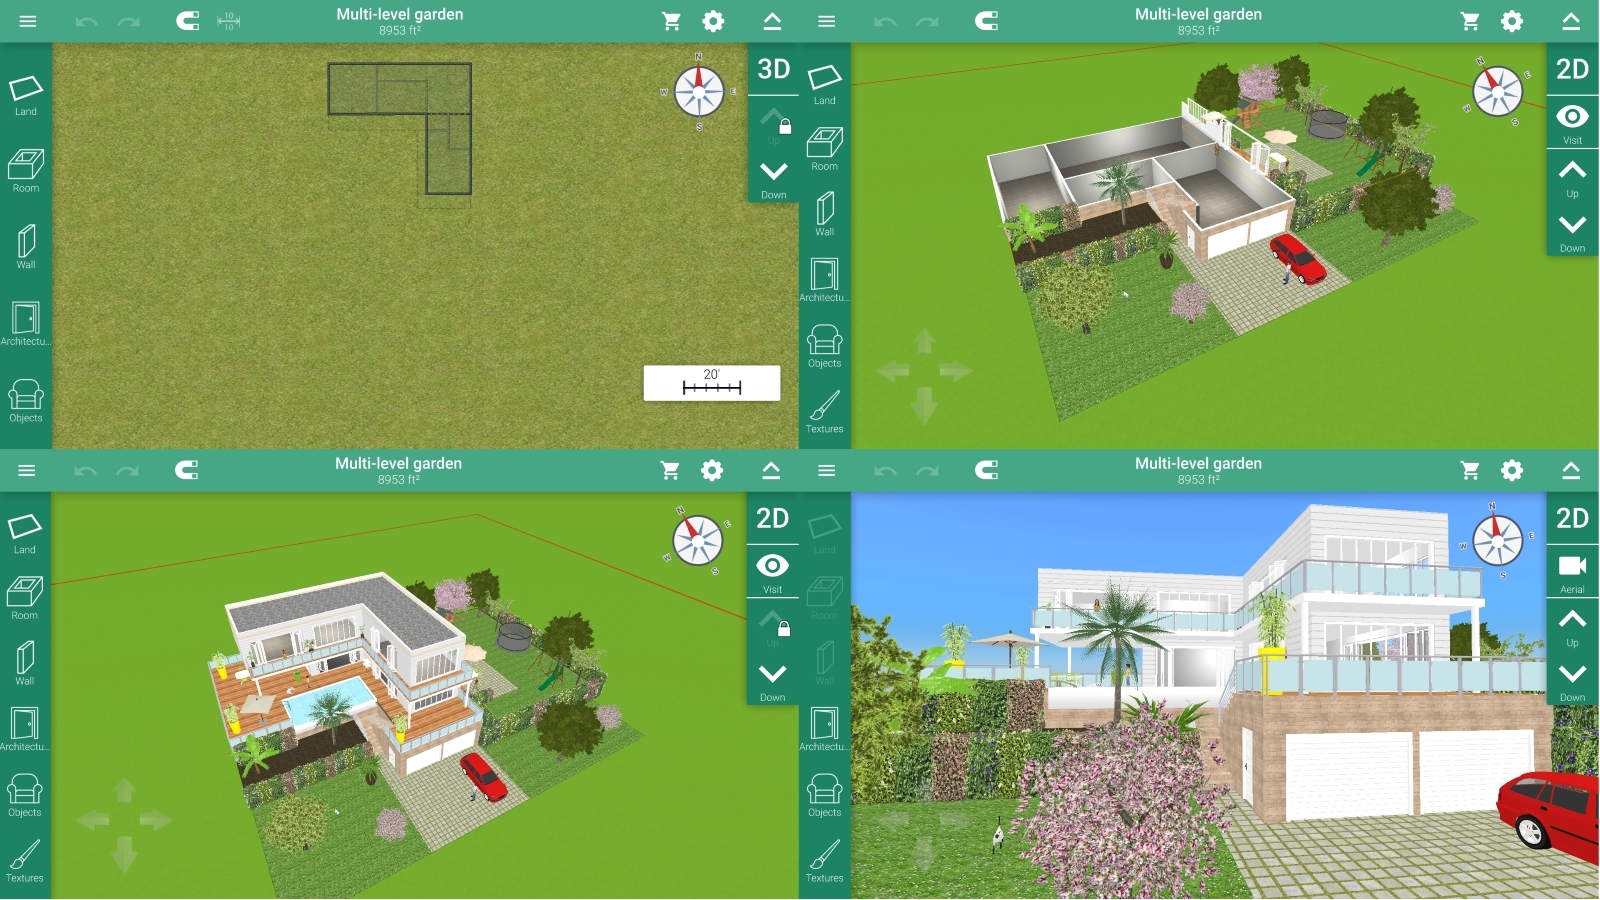 The 10 Best Home Design Apps for Android, iPhone and iPad  Slashdigit